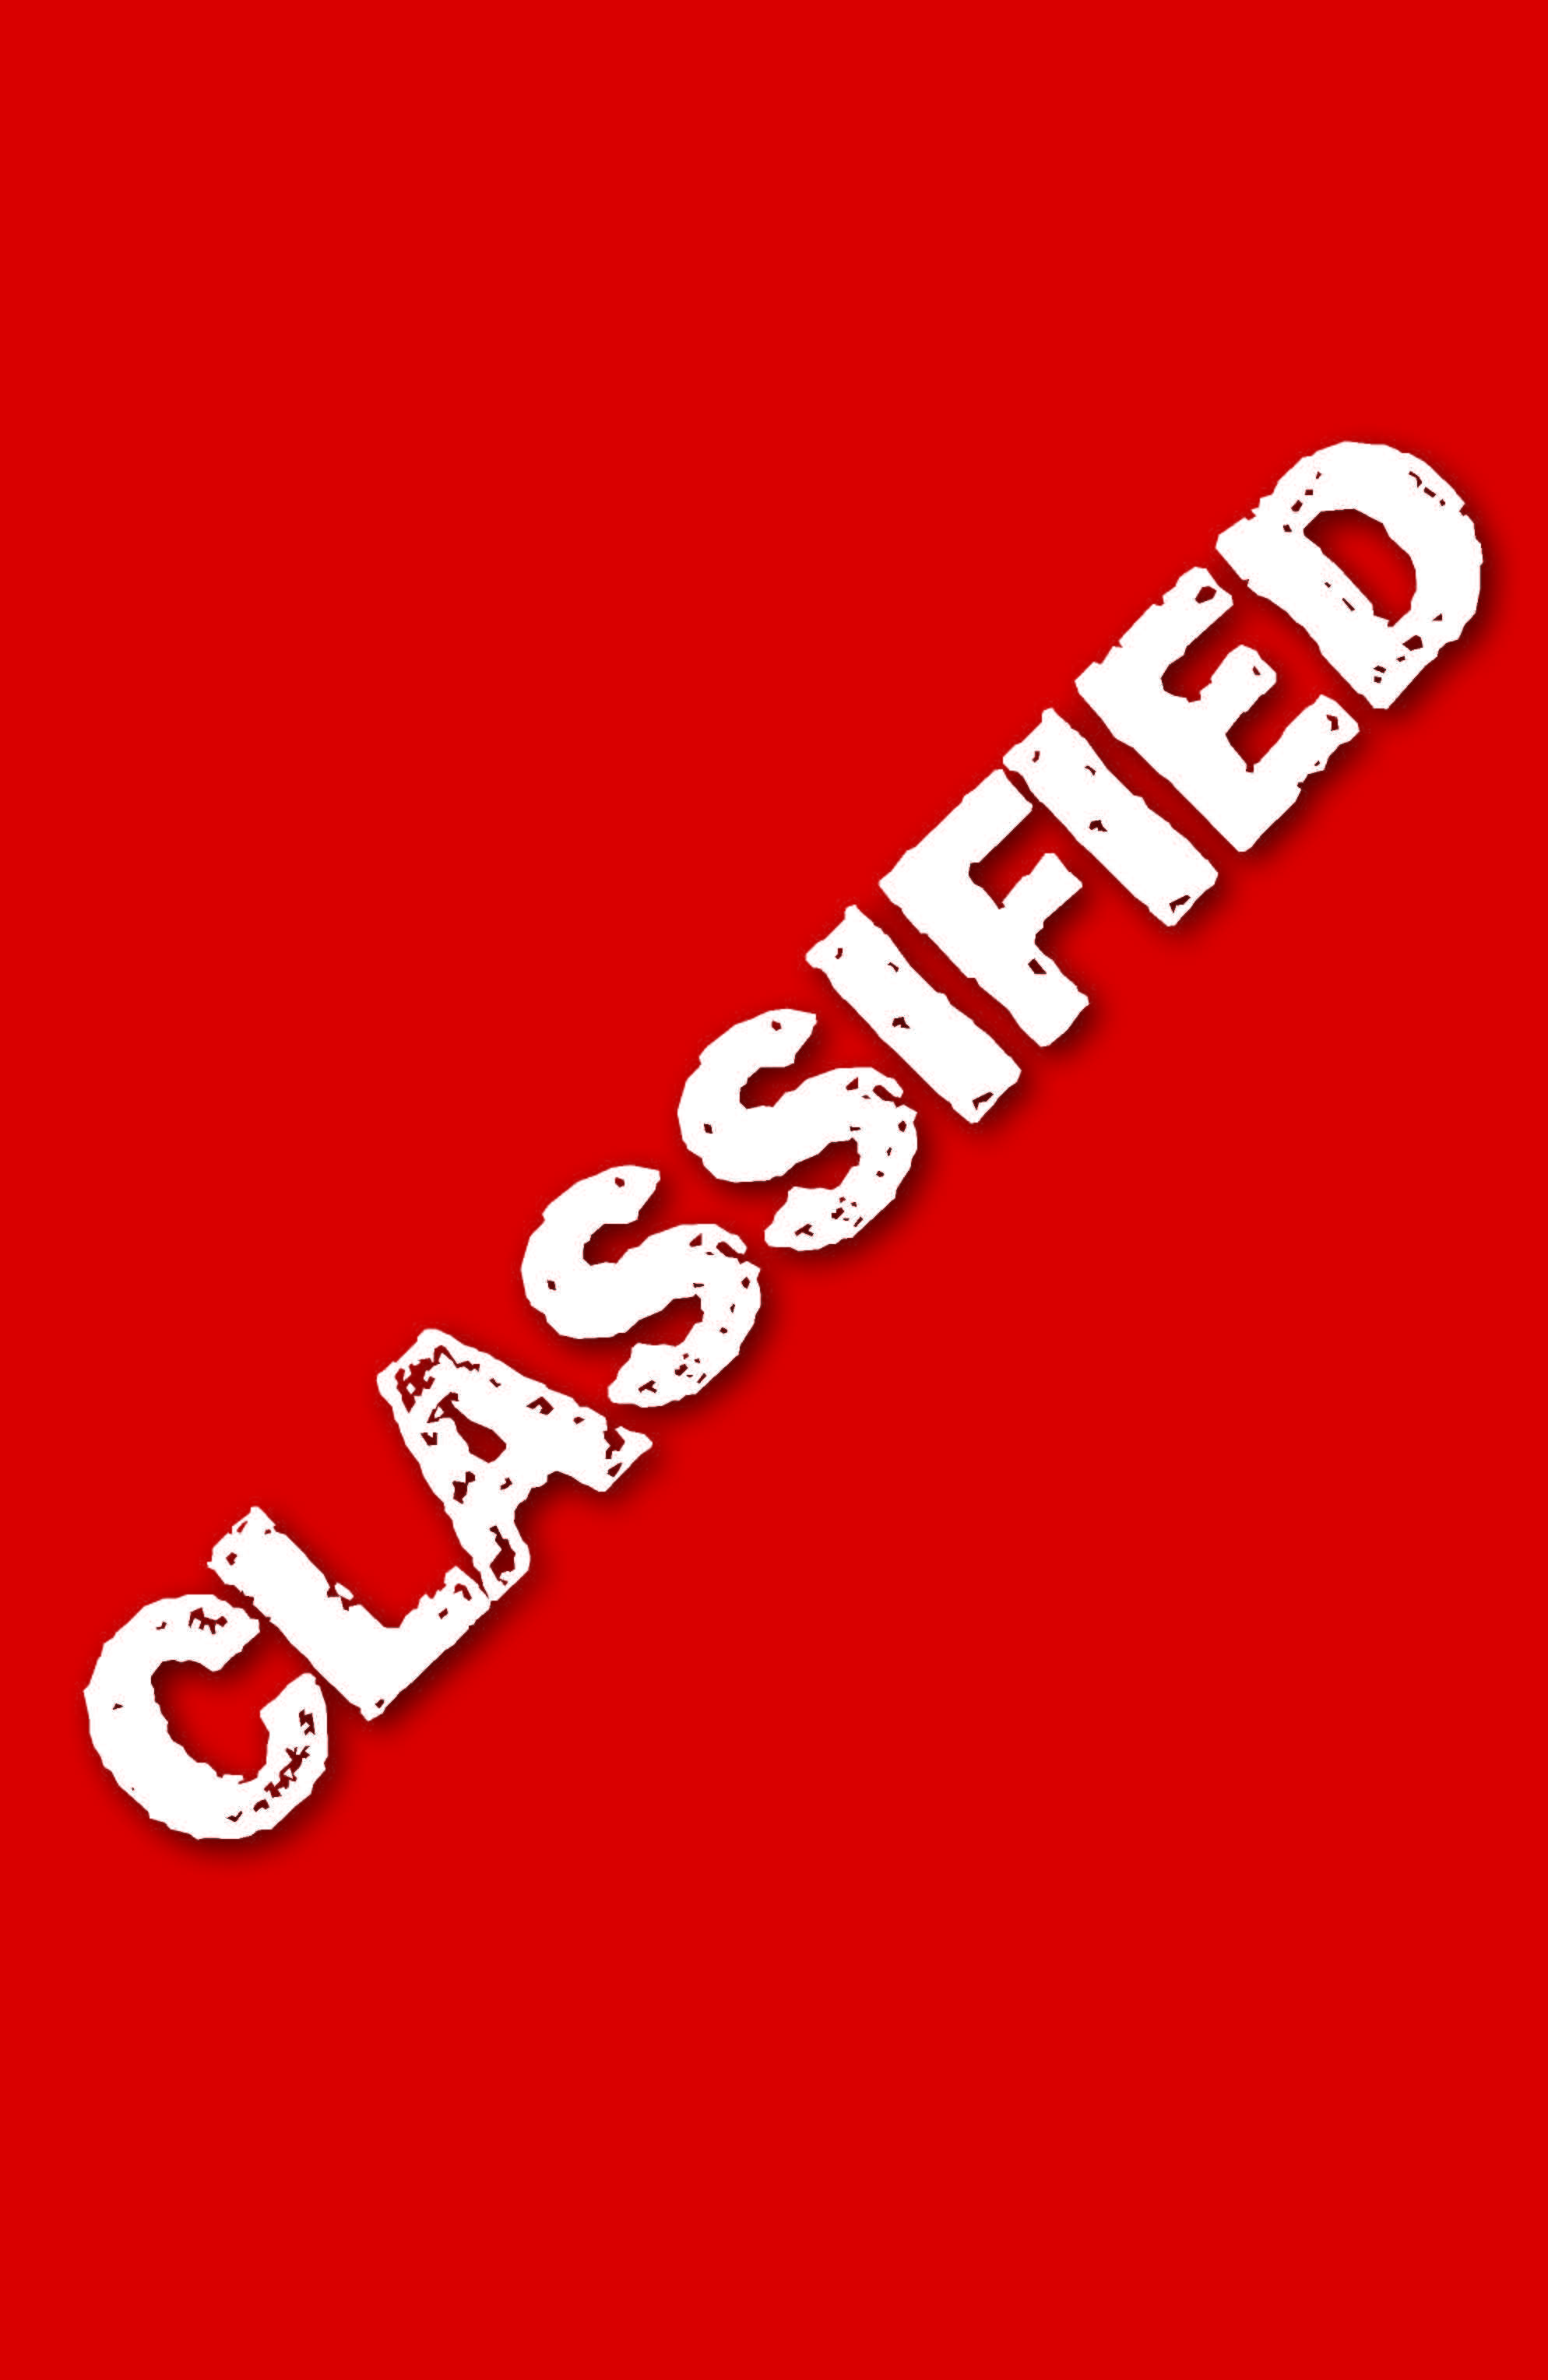 CLASSIFIED_COVER.jpg